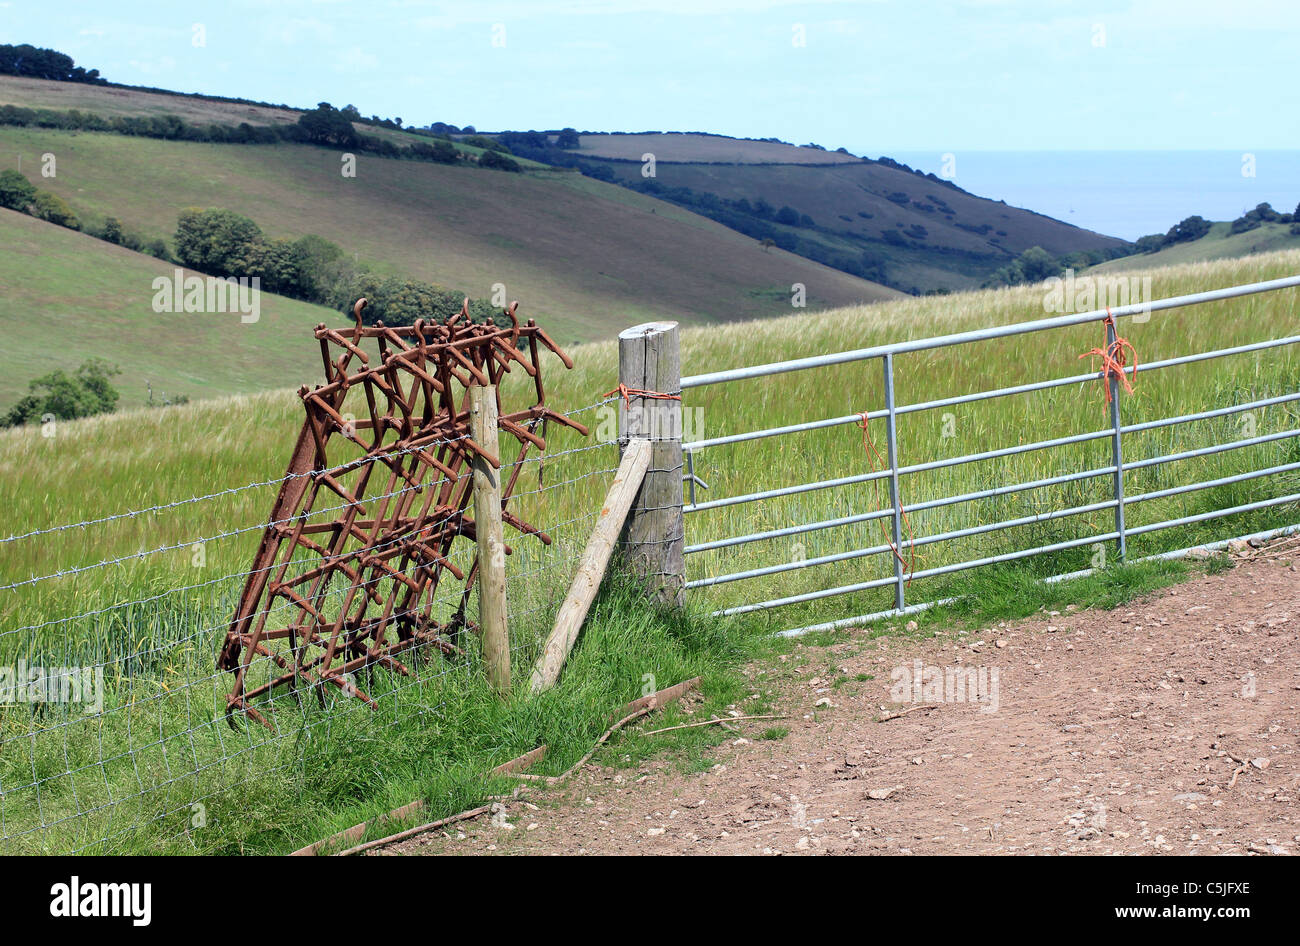 Harrow,fields Devon cove,Fence post and cloud,misc, fence, farming, keep, out, private,get of my land,farming - Stock Image